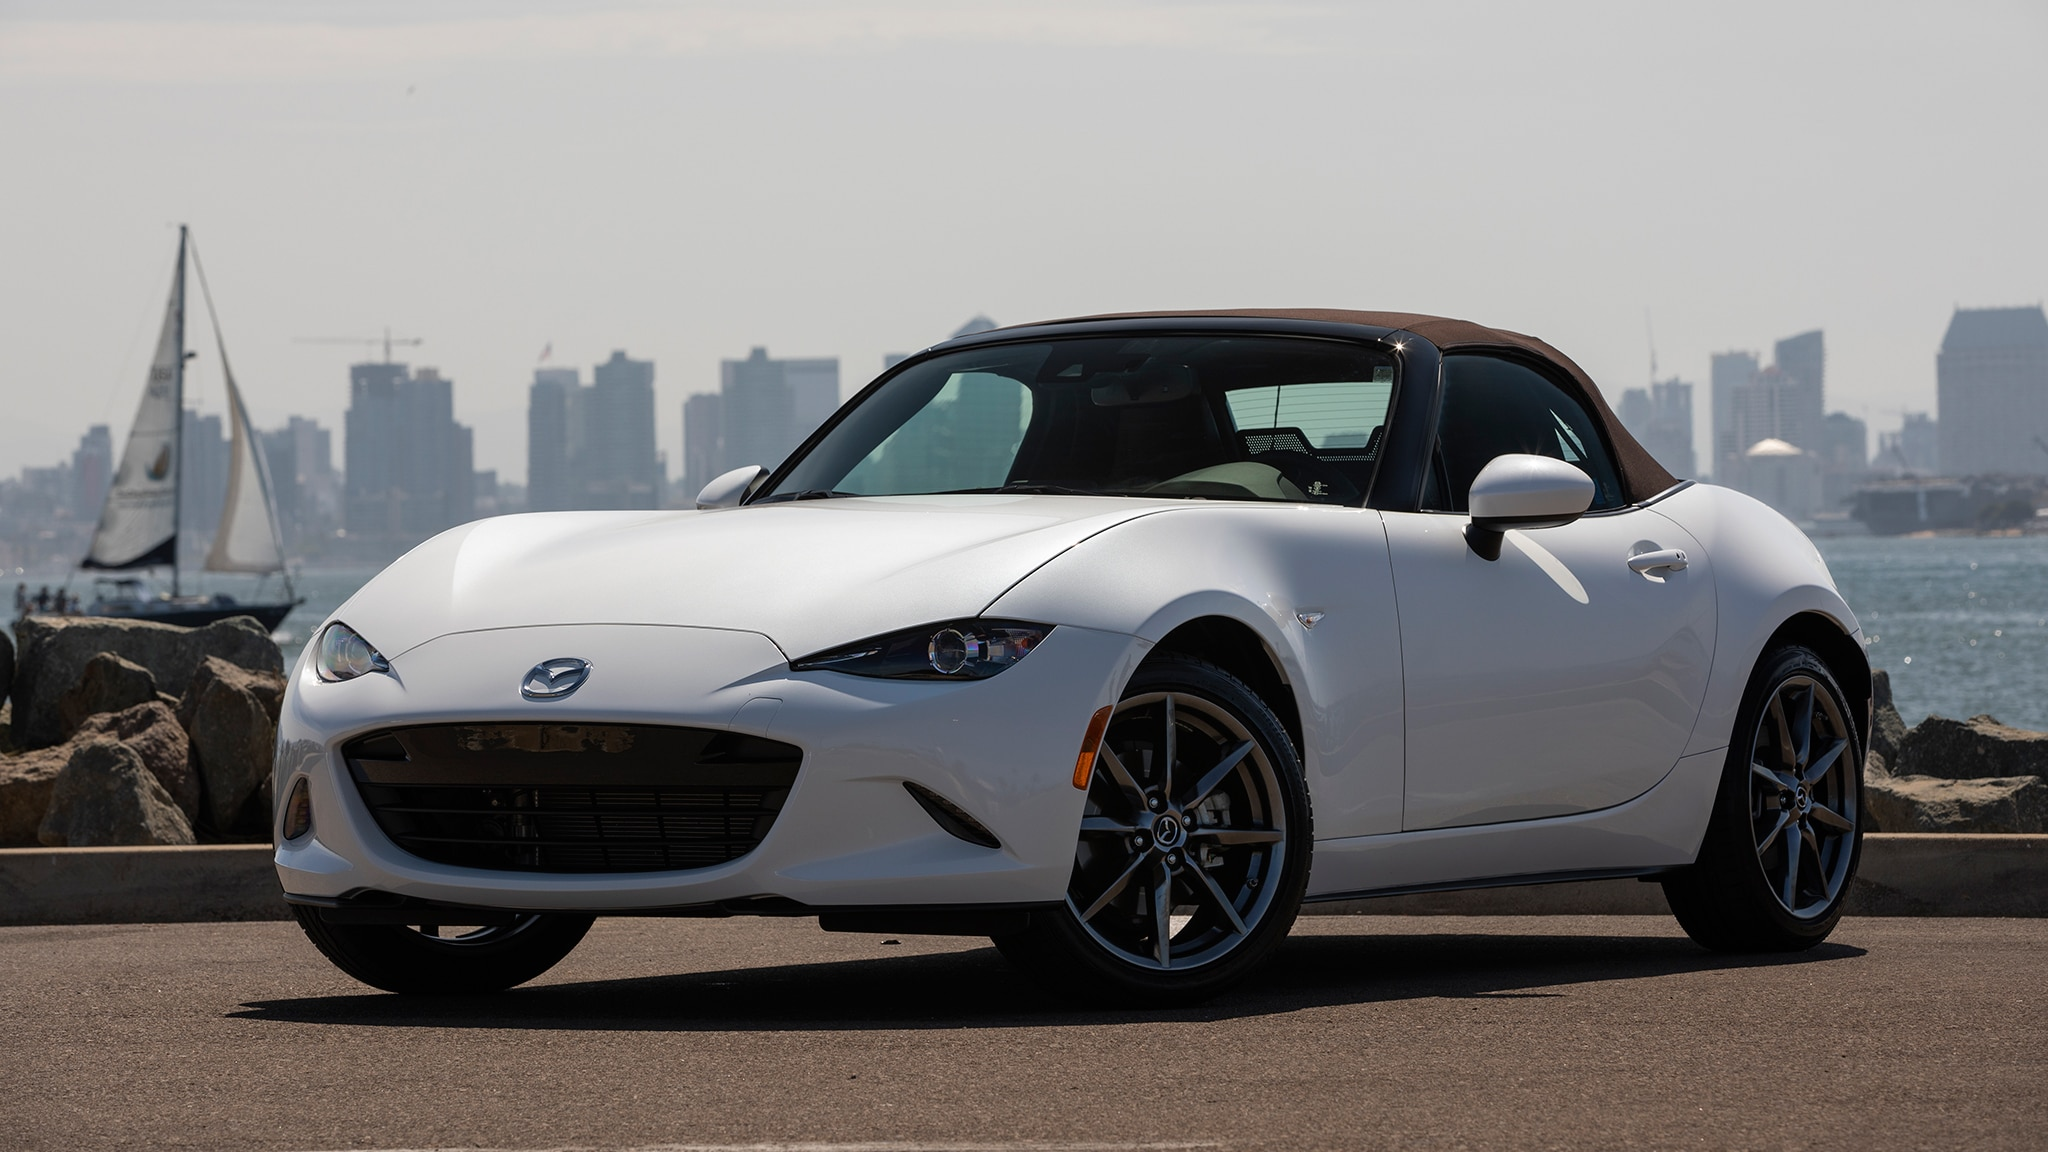 2019 Mazda Mx 5 Miata First Drive Review Automobile Magazine